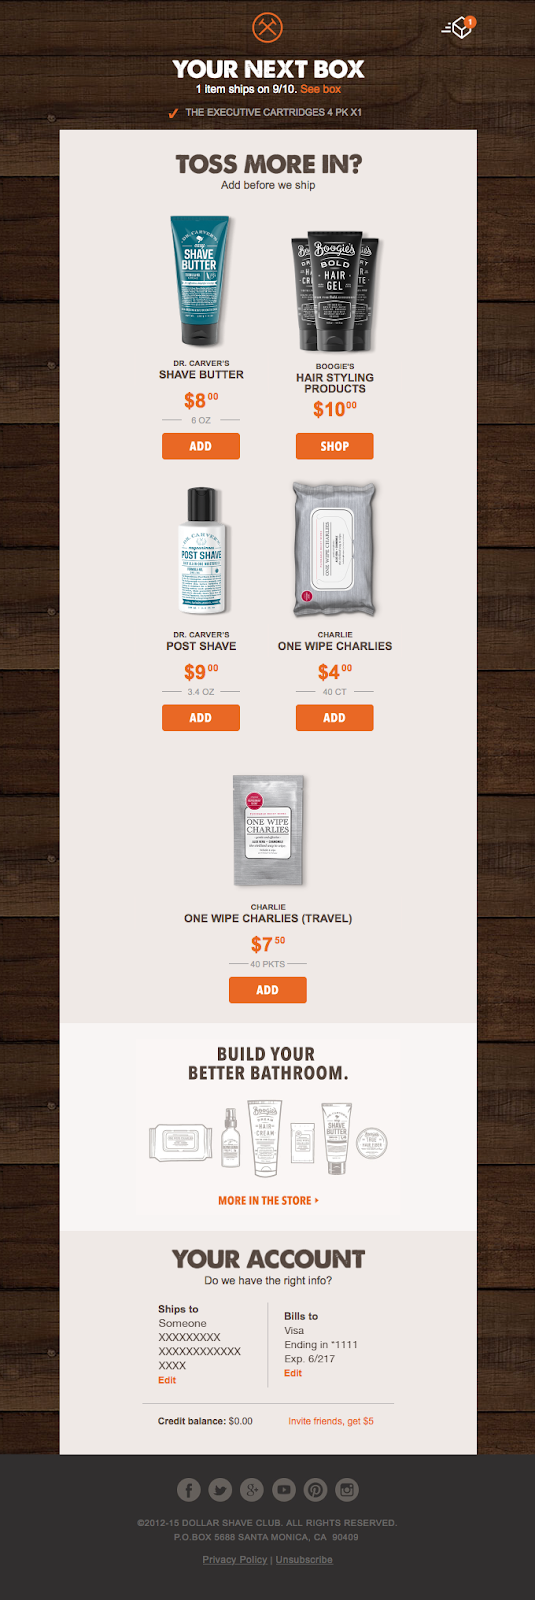 An email from Dollar Shave Club asking the purchaser to add more to their next shipment.